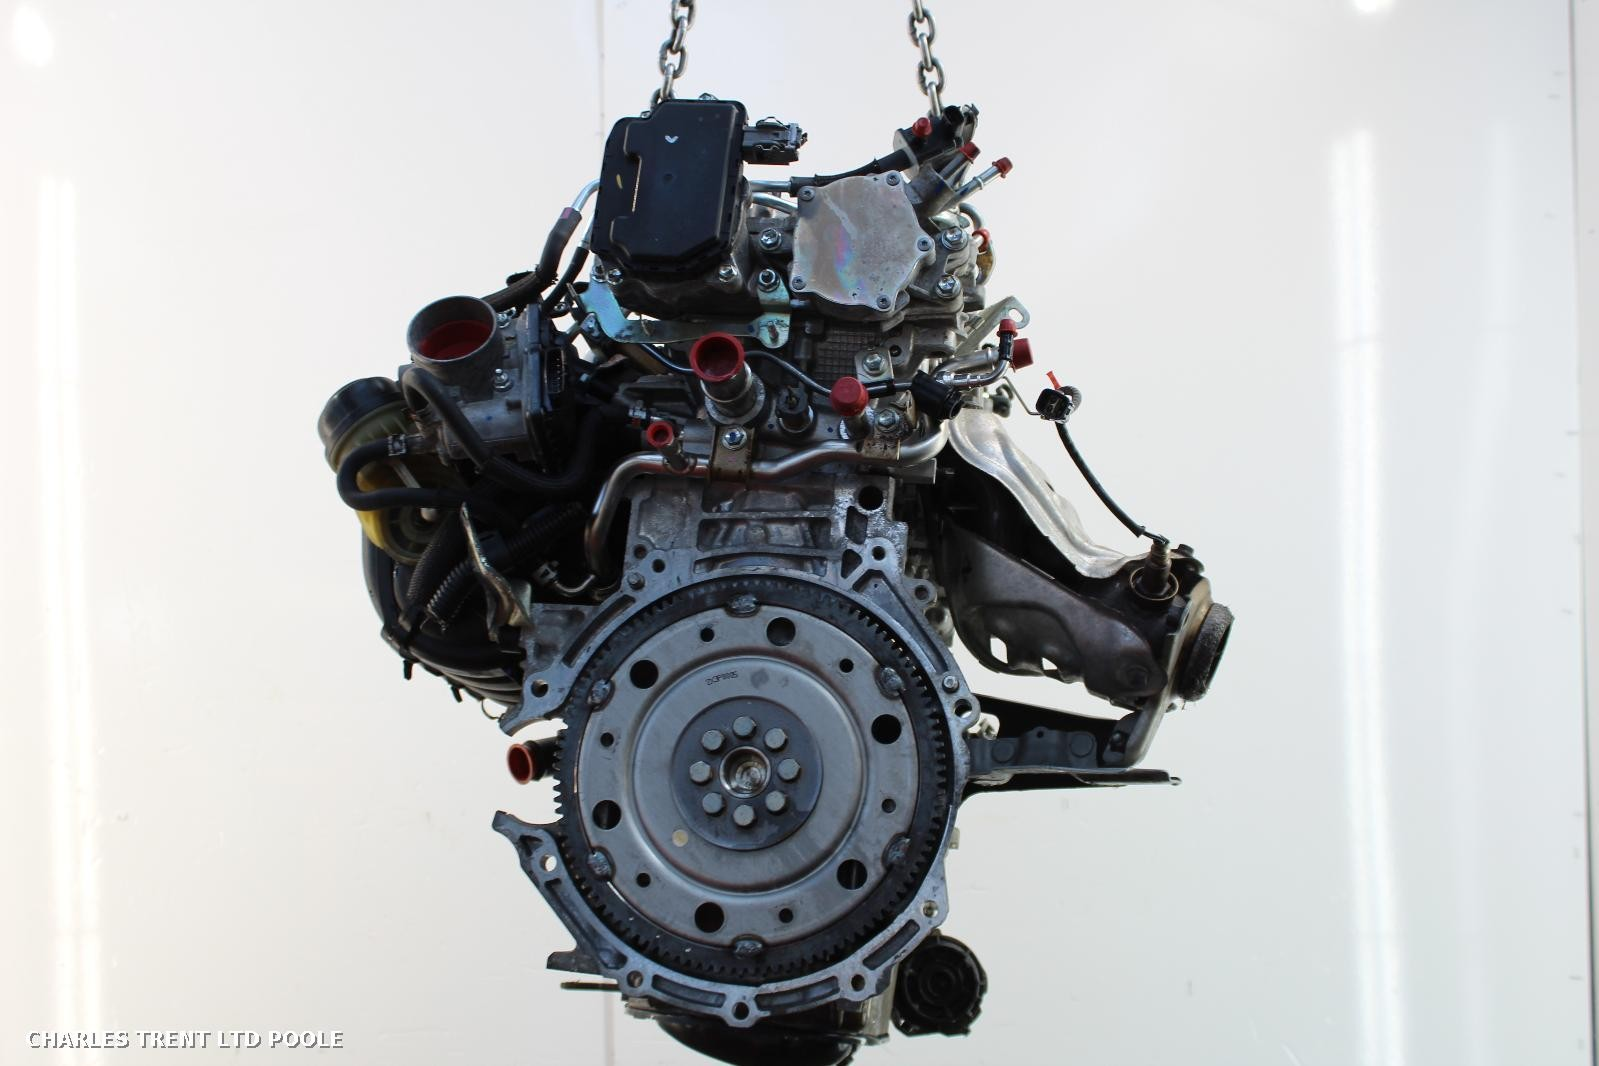 2013 - TOYOTA - AVENSIS - ENGINES